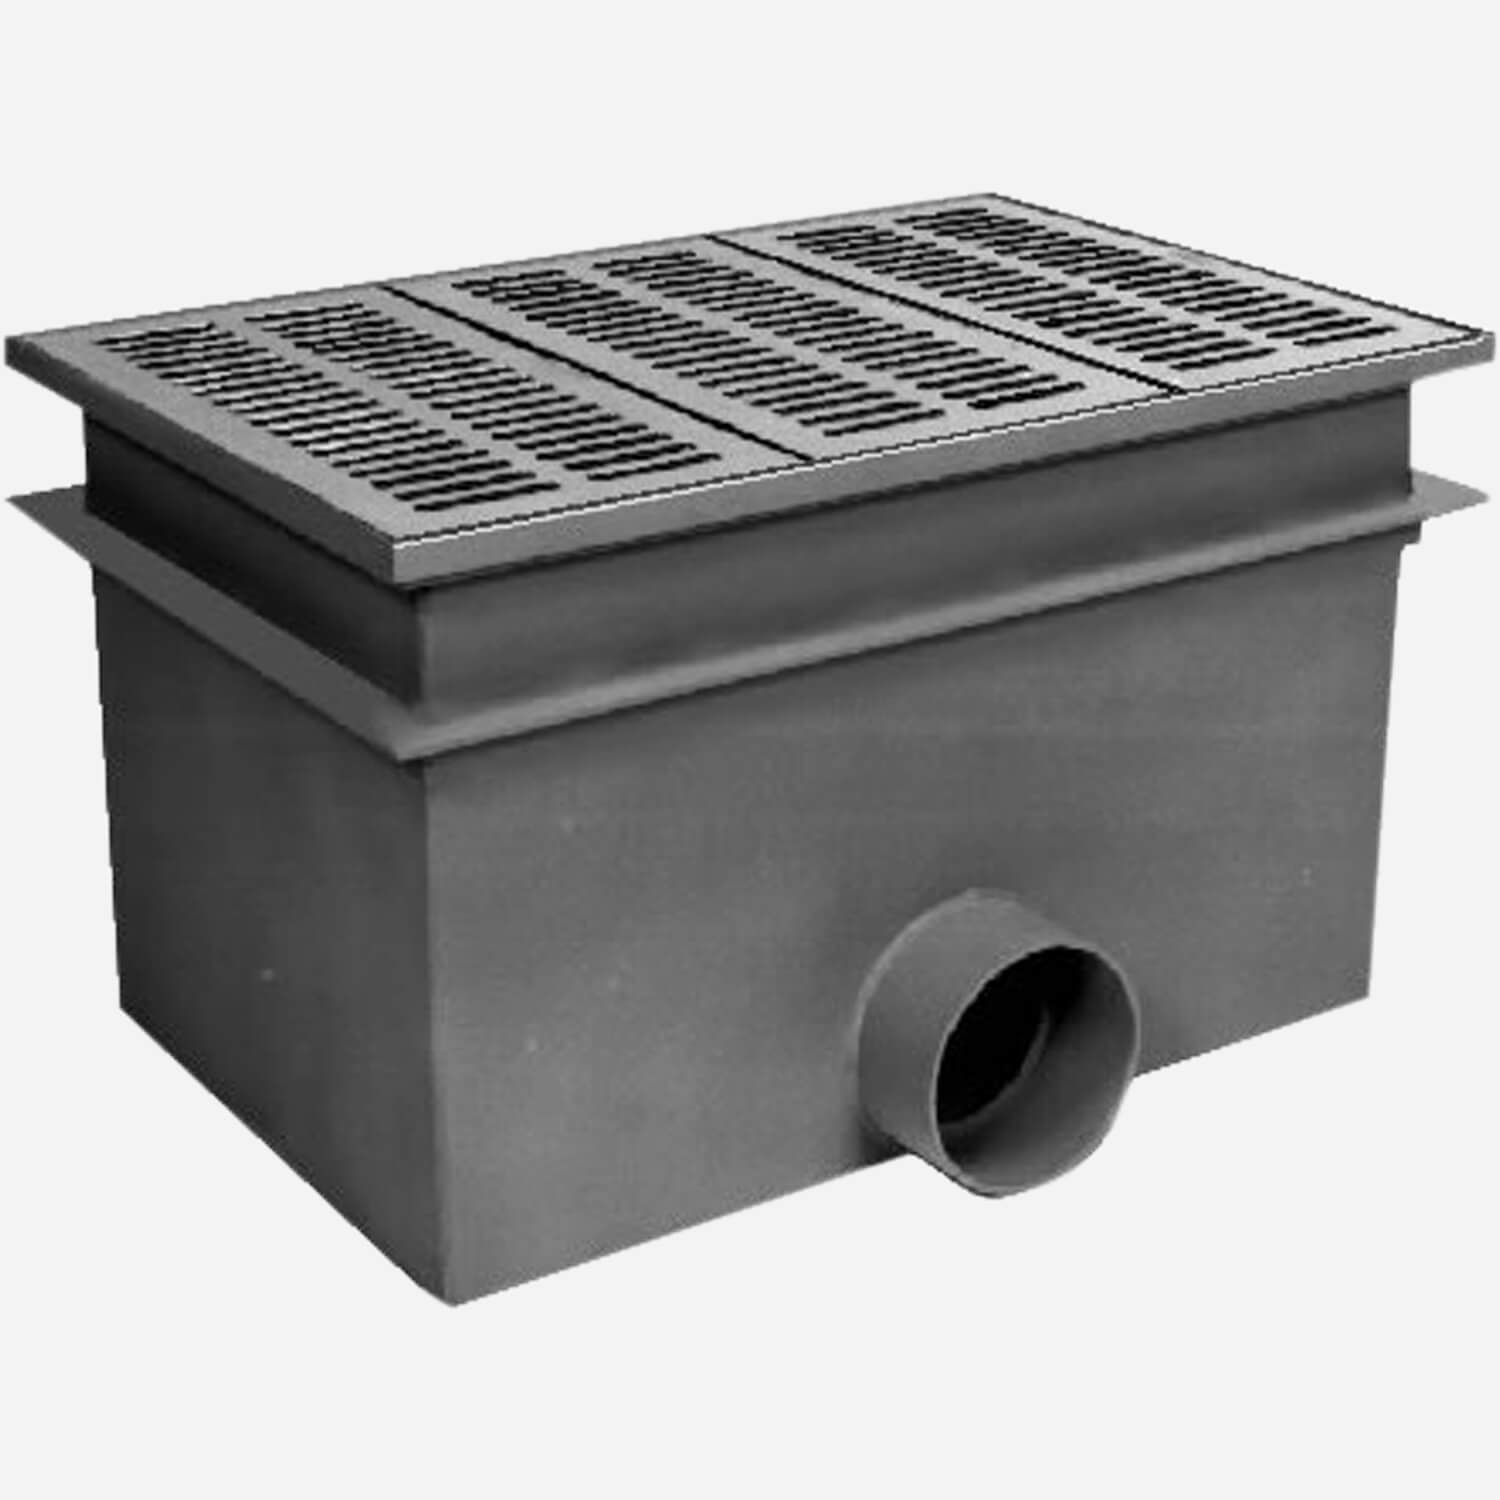 Large Capacity, Side Outlet Special Purpose Drain